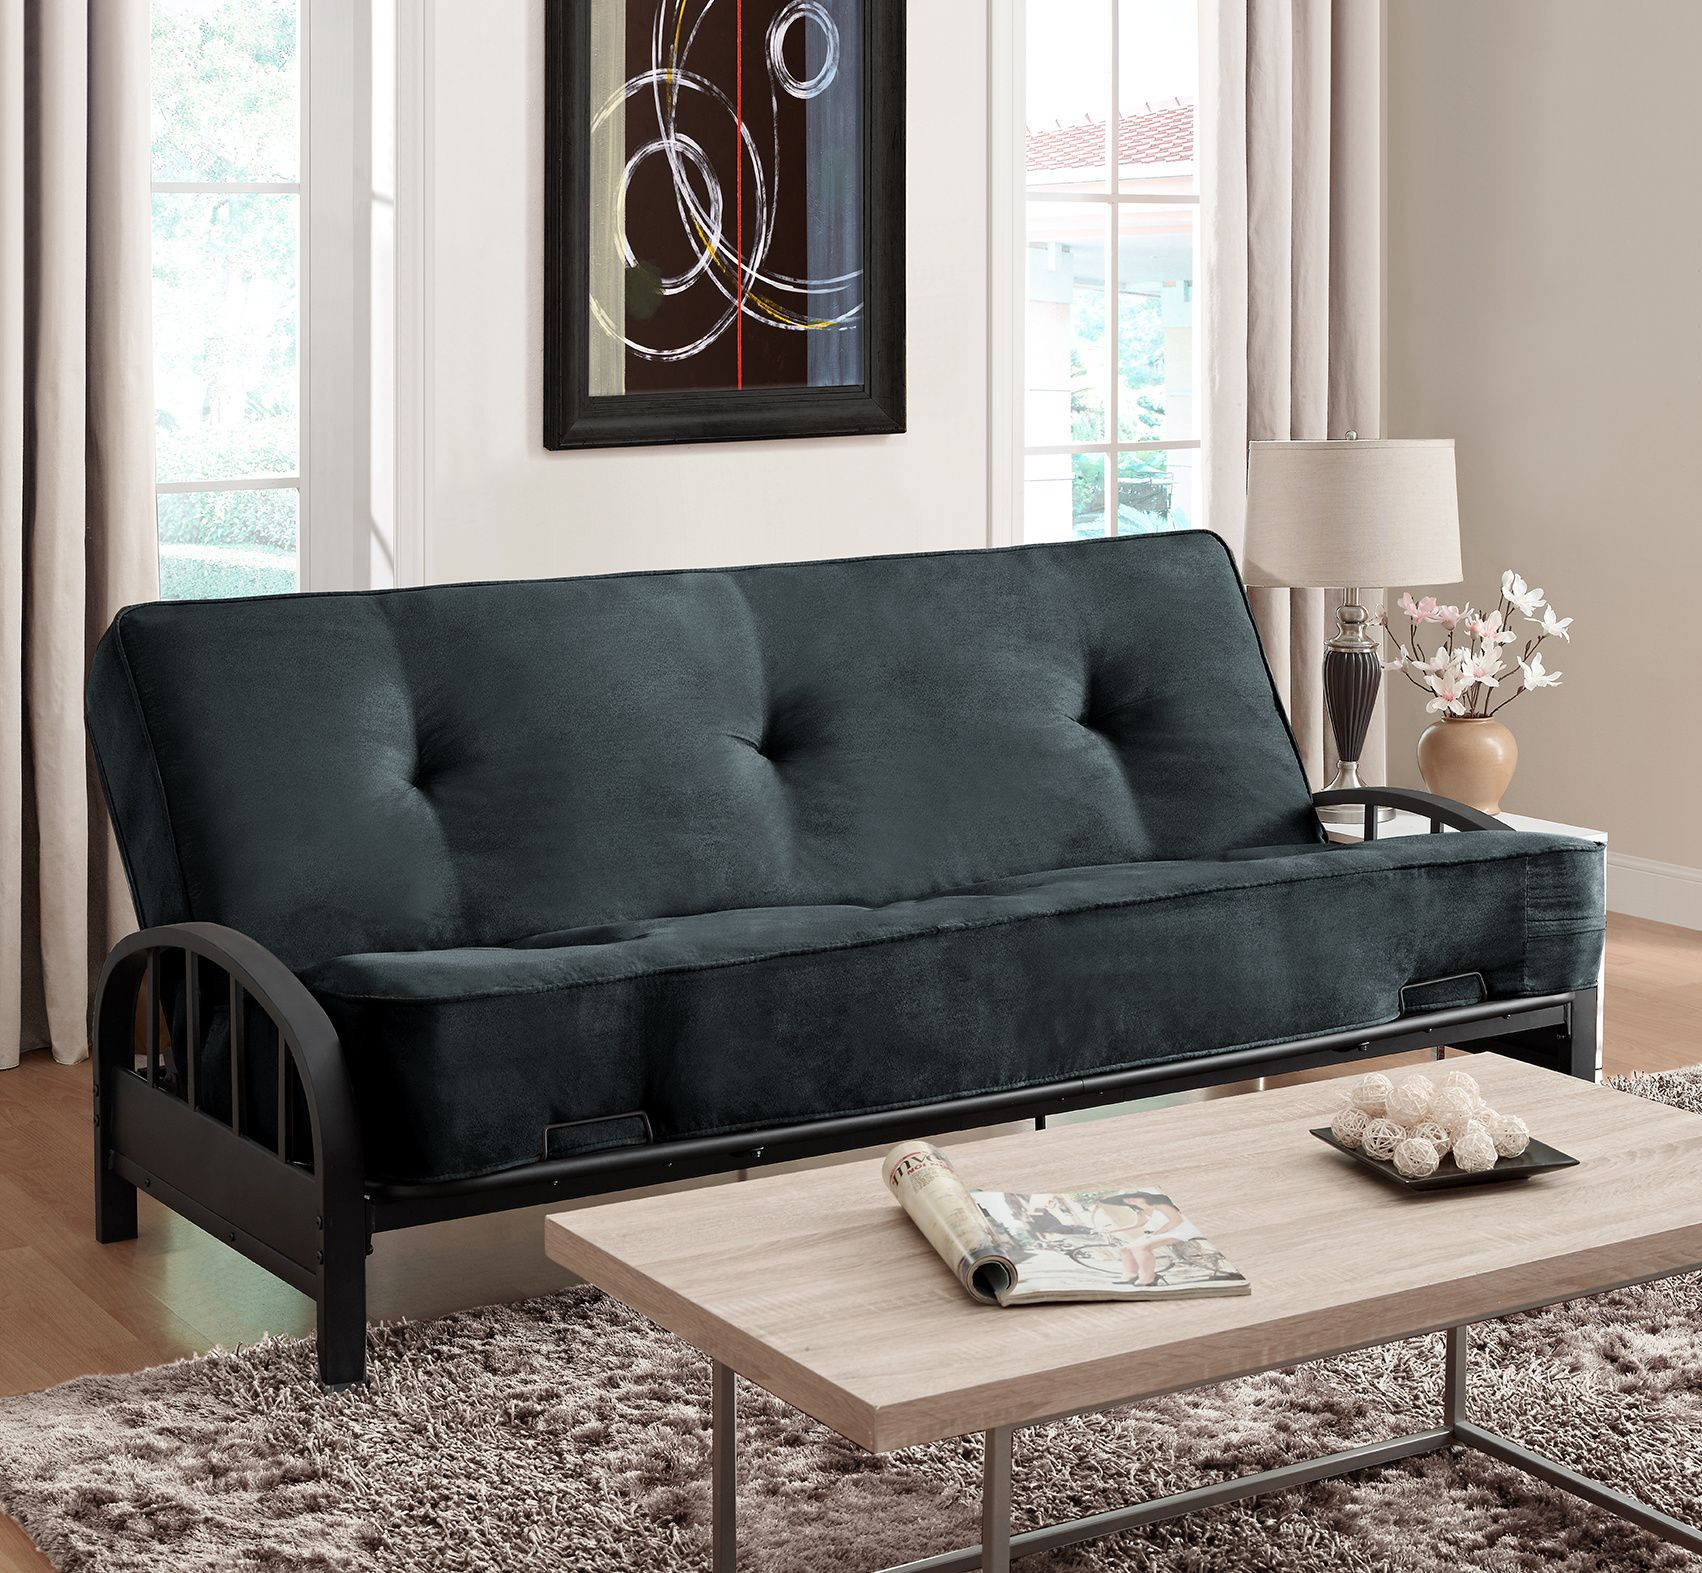 Need A Versatile Sofa For Your First